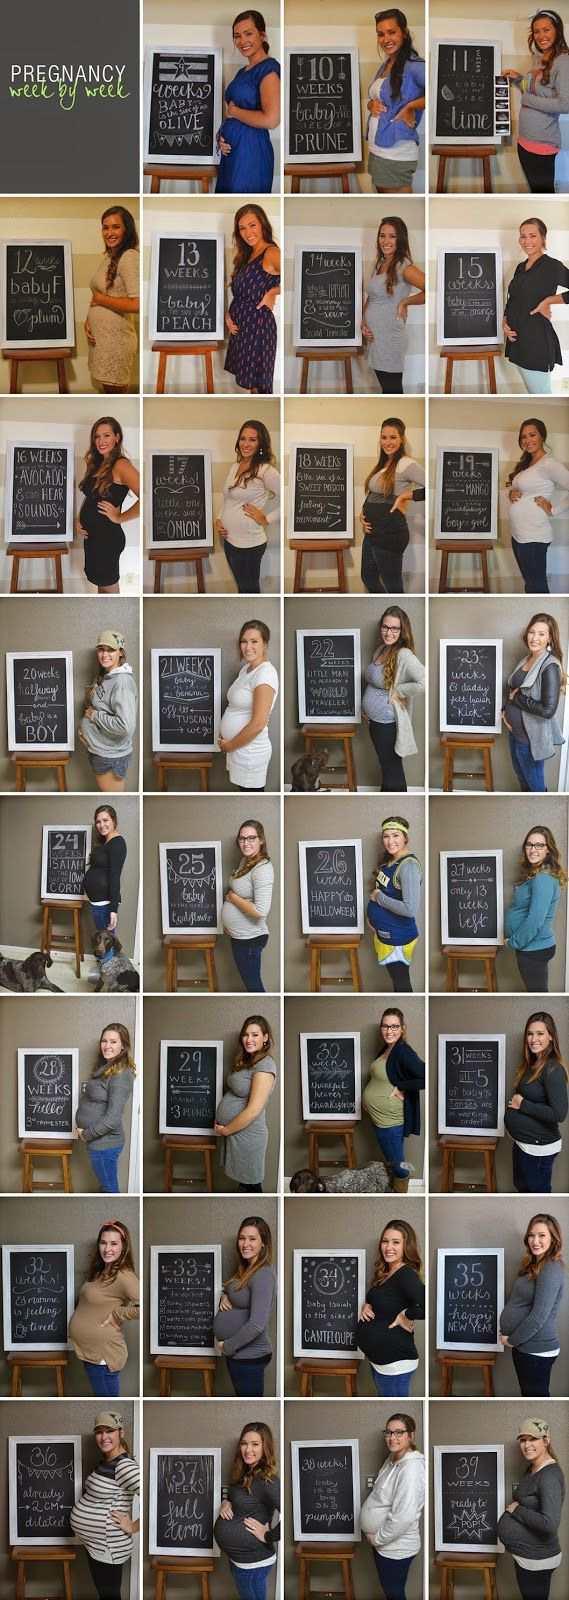 Berger & Co.: overview | pregnancy week by week